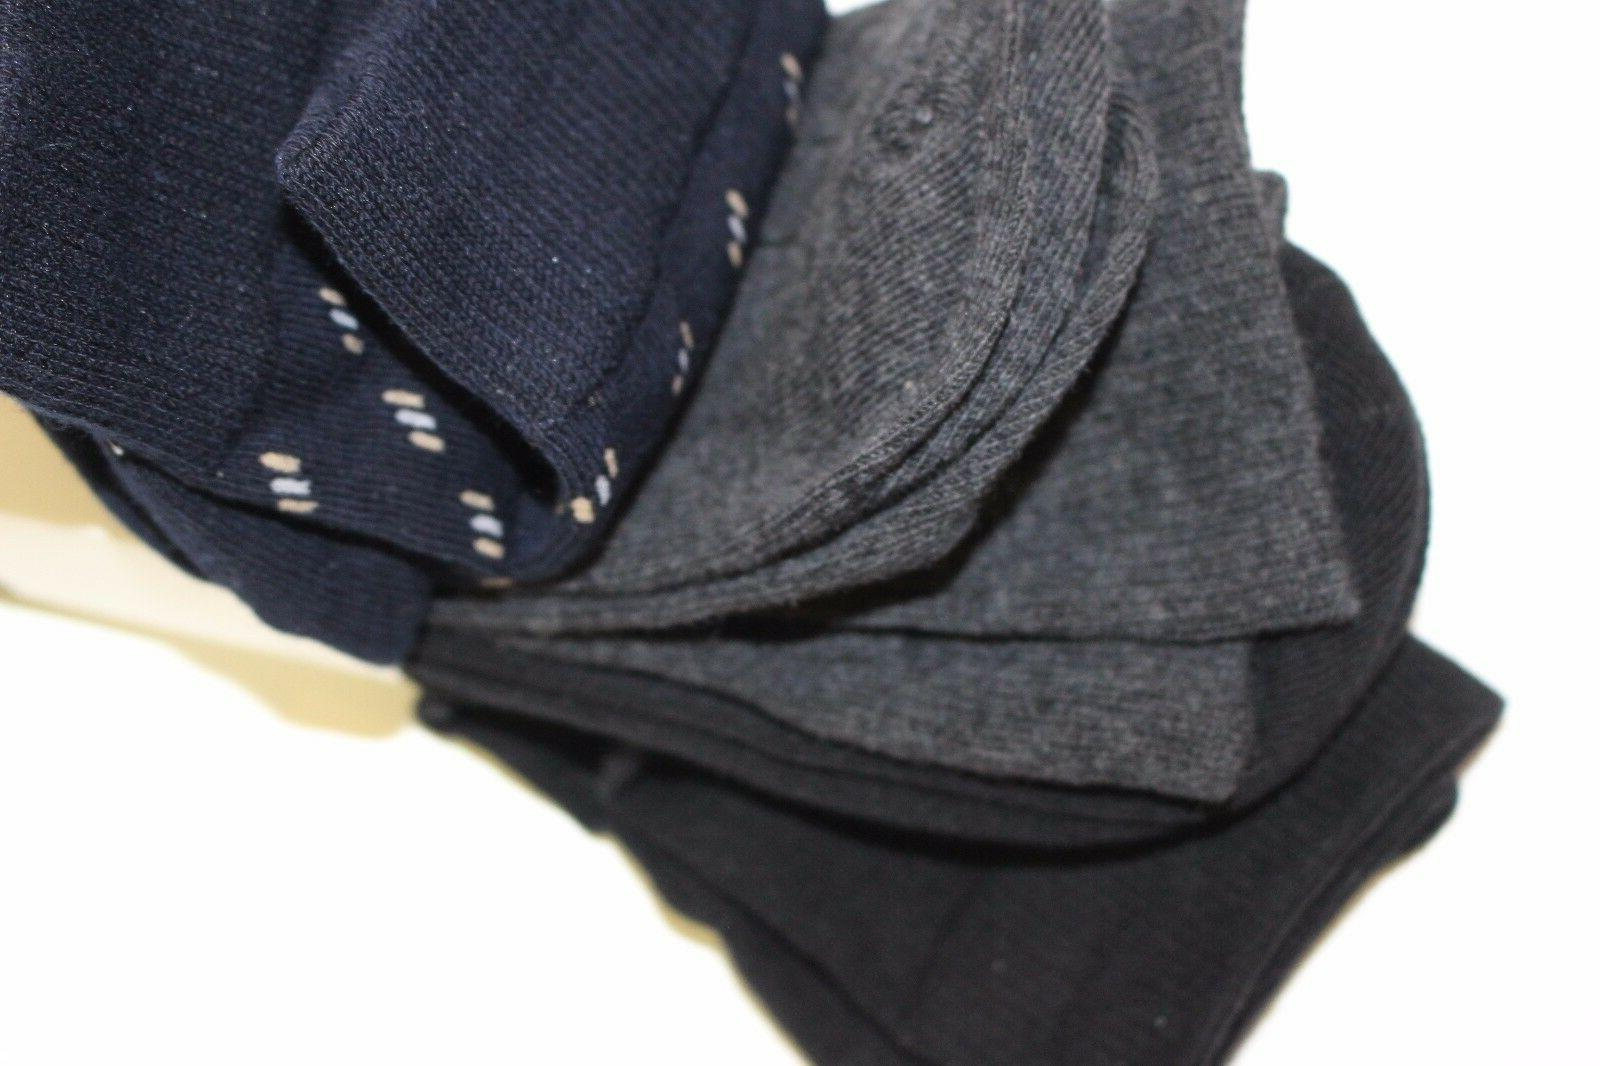 ALPINE PACK SIZE CHARCOAL